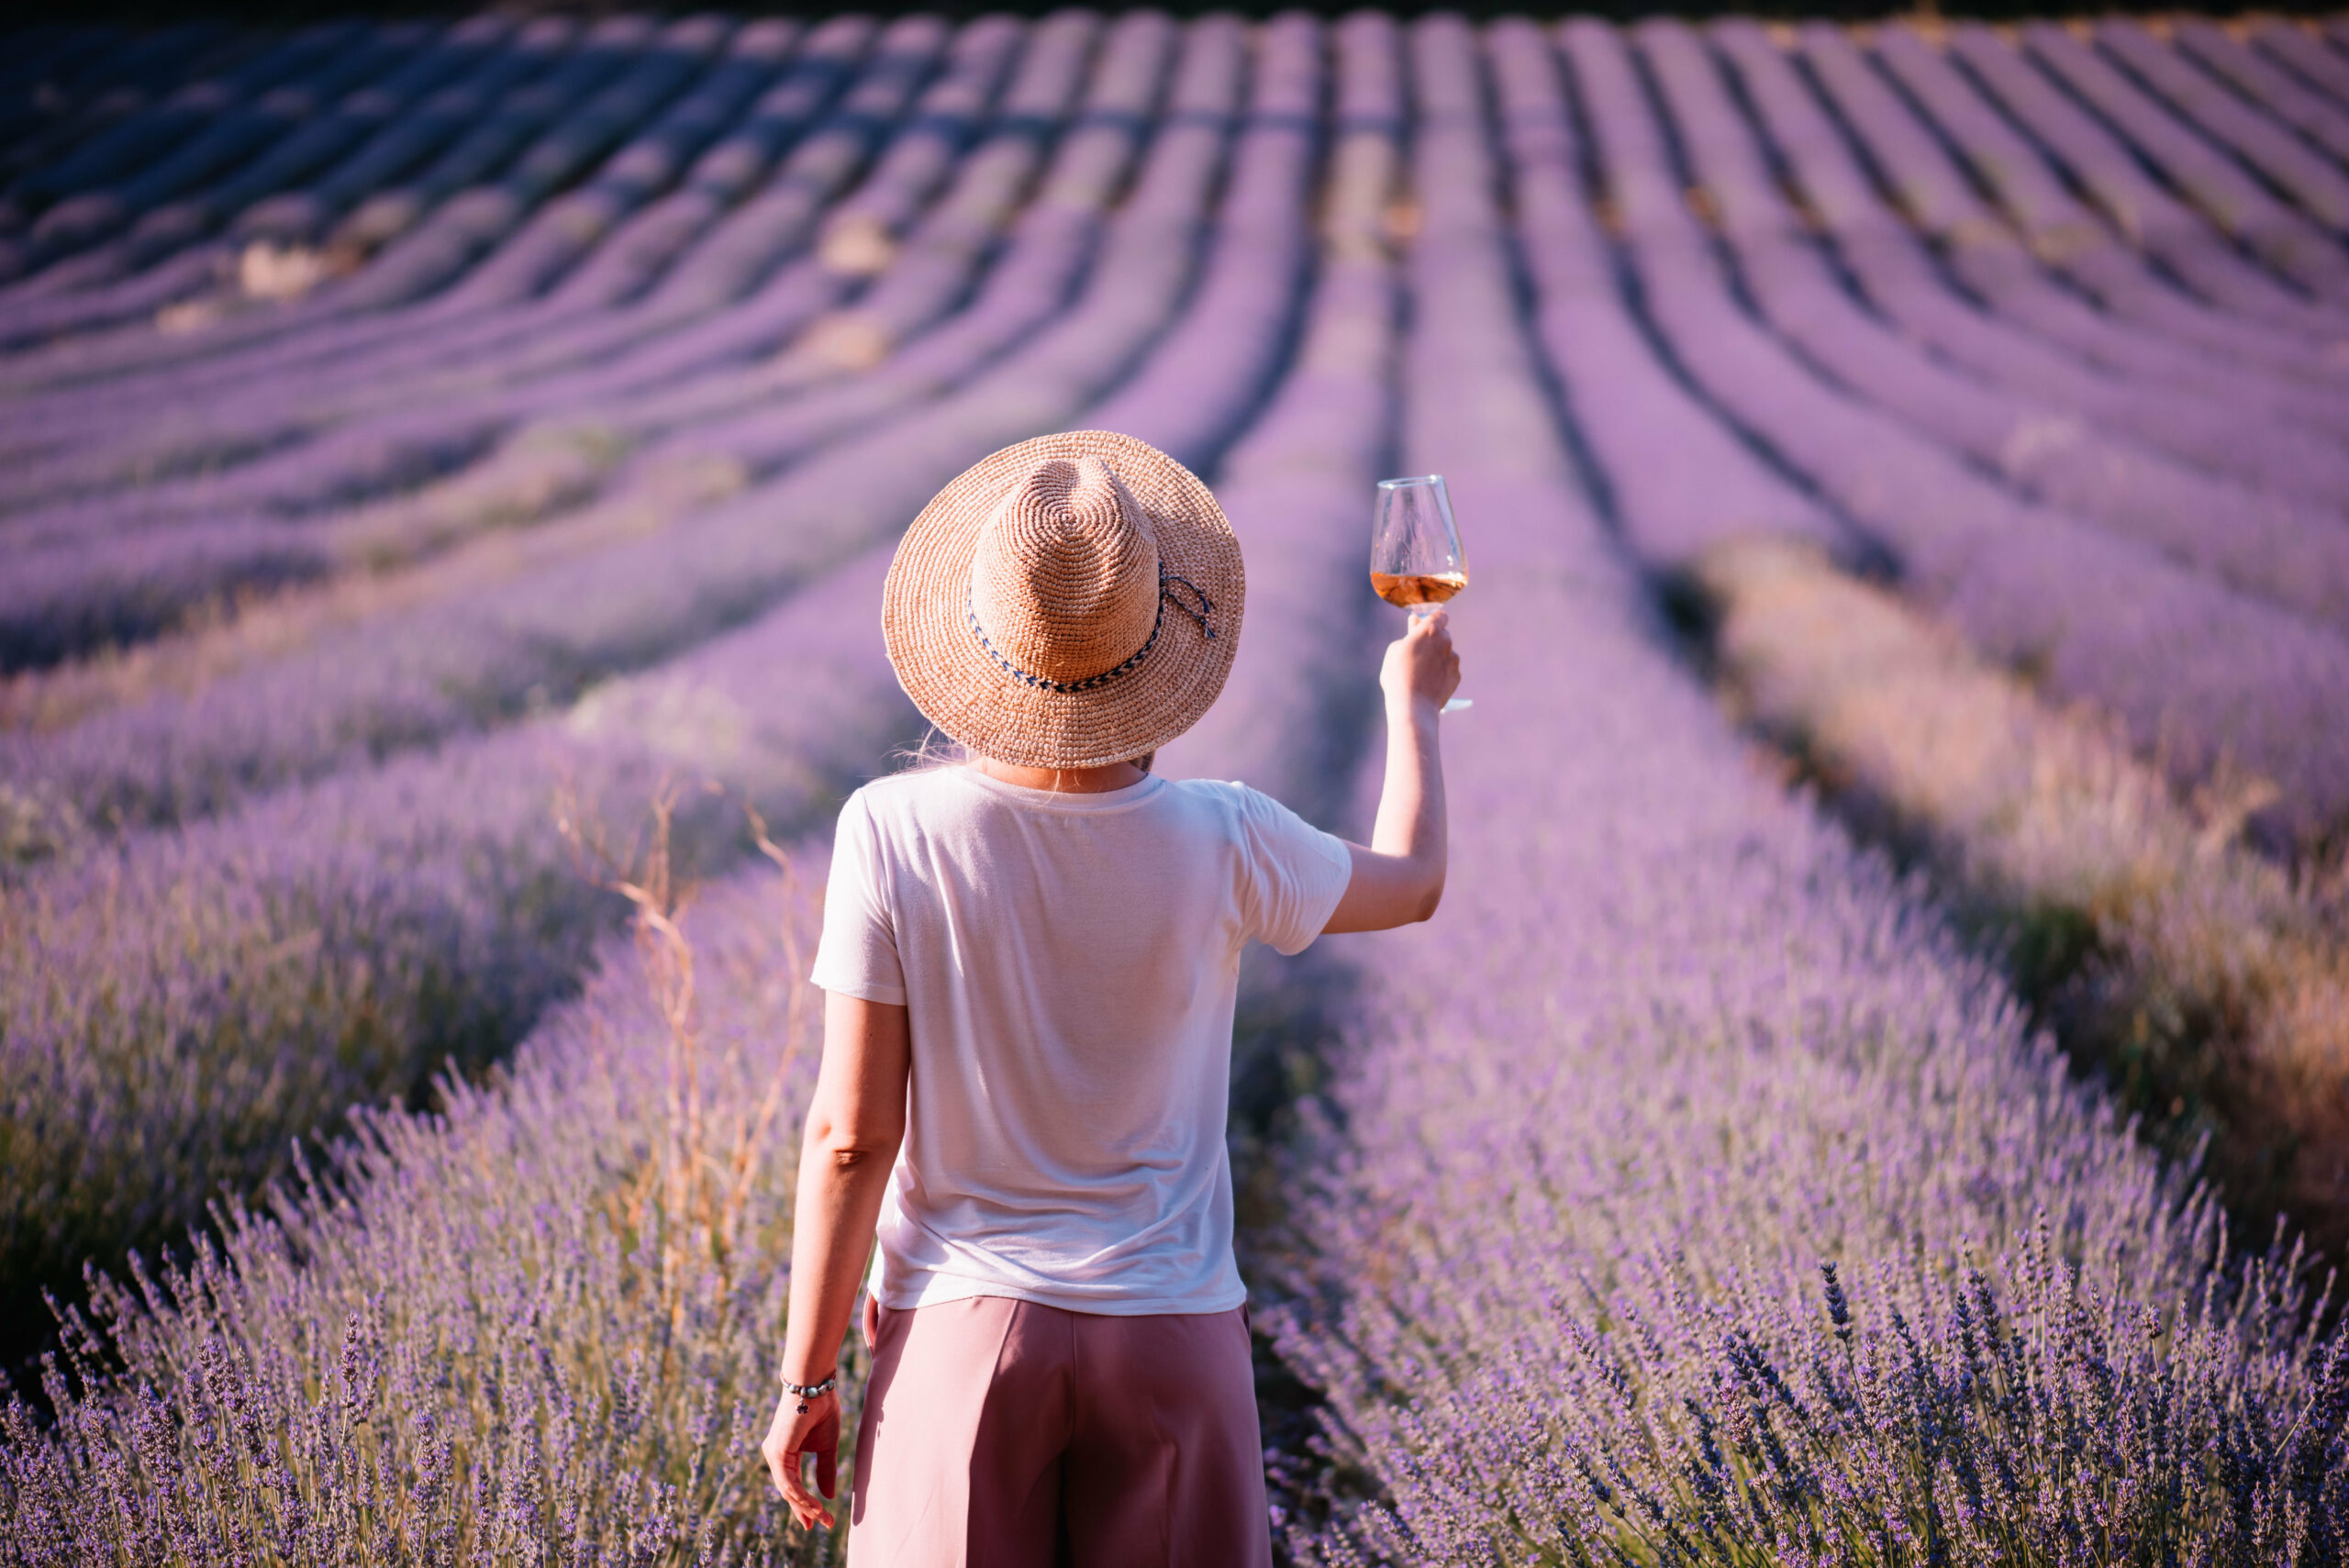 Wine tasting overlooking a lavender field in Provence